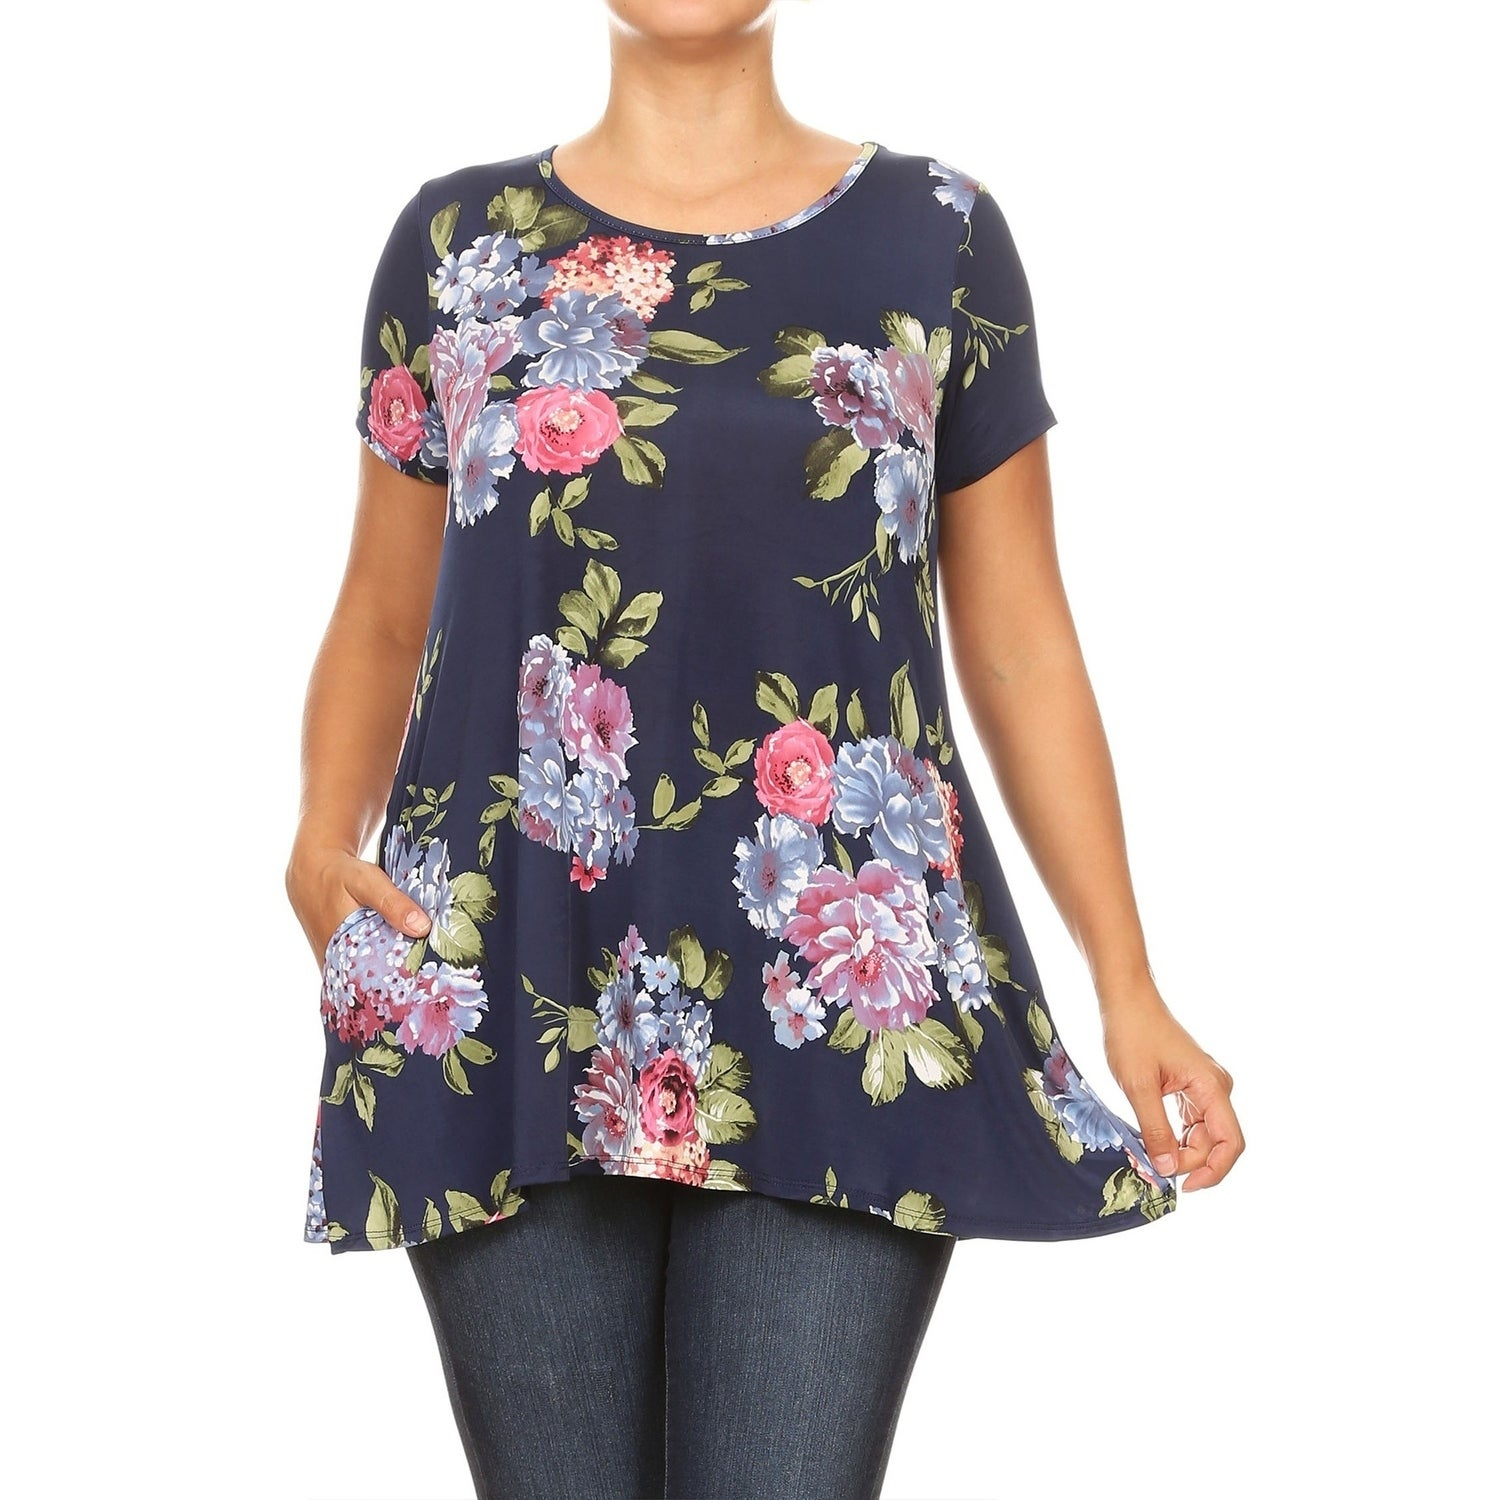 UK Plus Size Womens Short Sleeve Tops Summer Casual Ladies Floral Blouse T Shirt